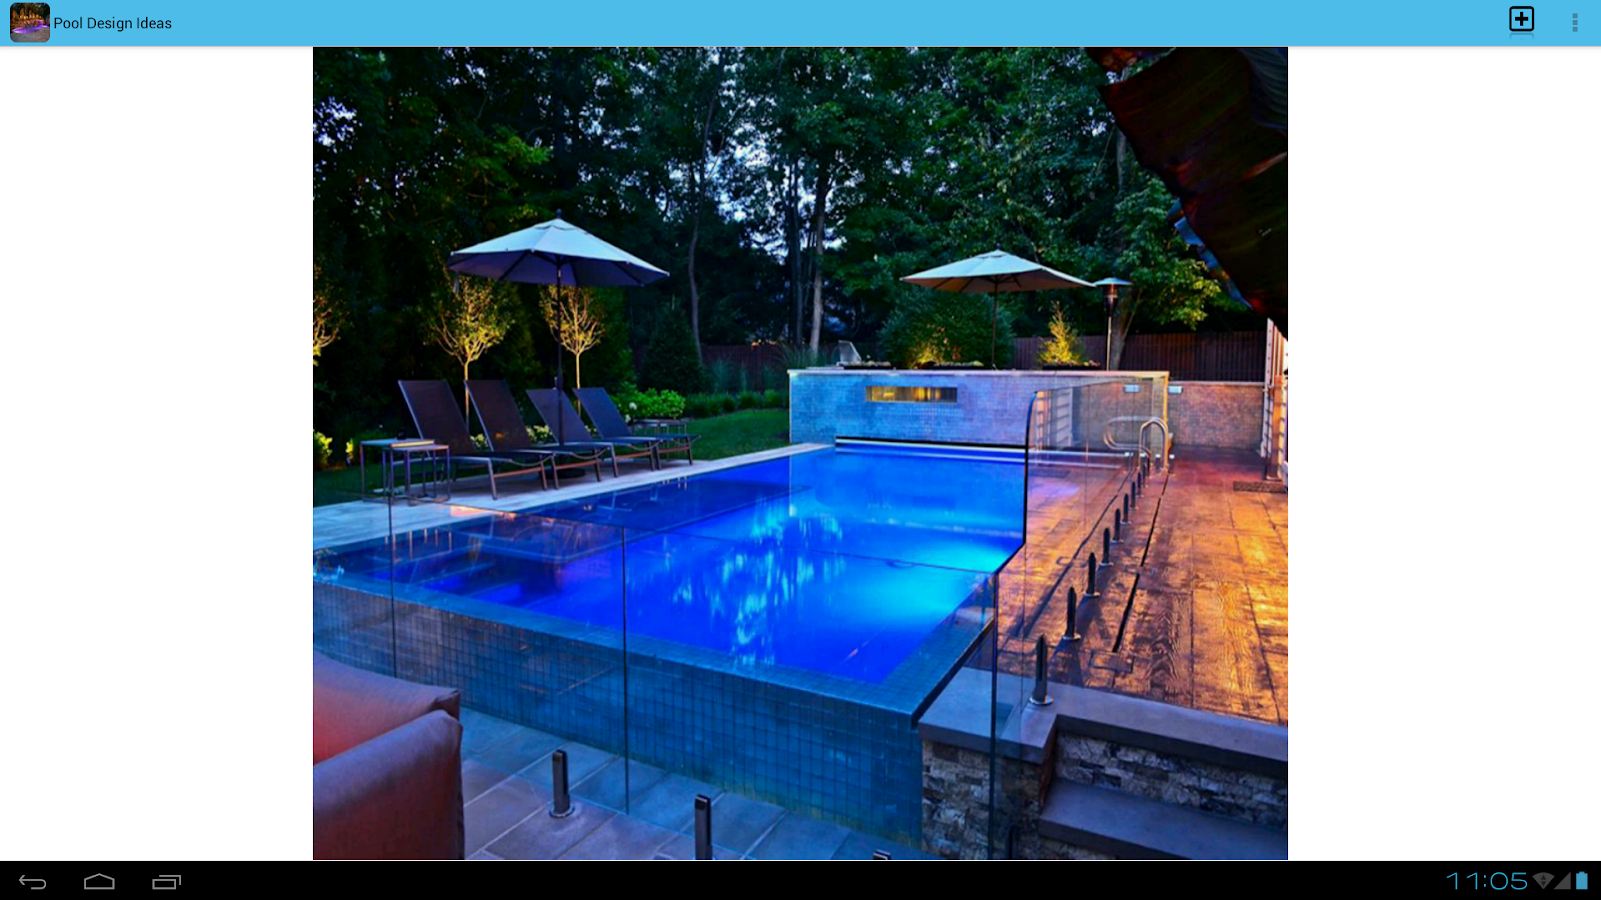 Pool design ideas android apps on google play for Pool design app